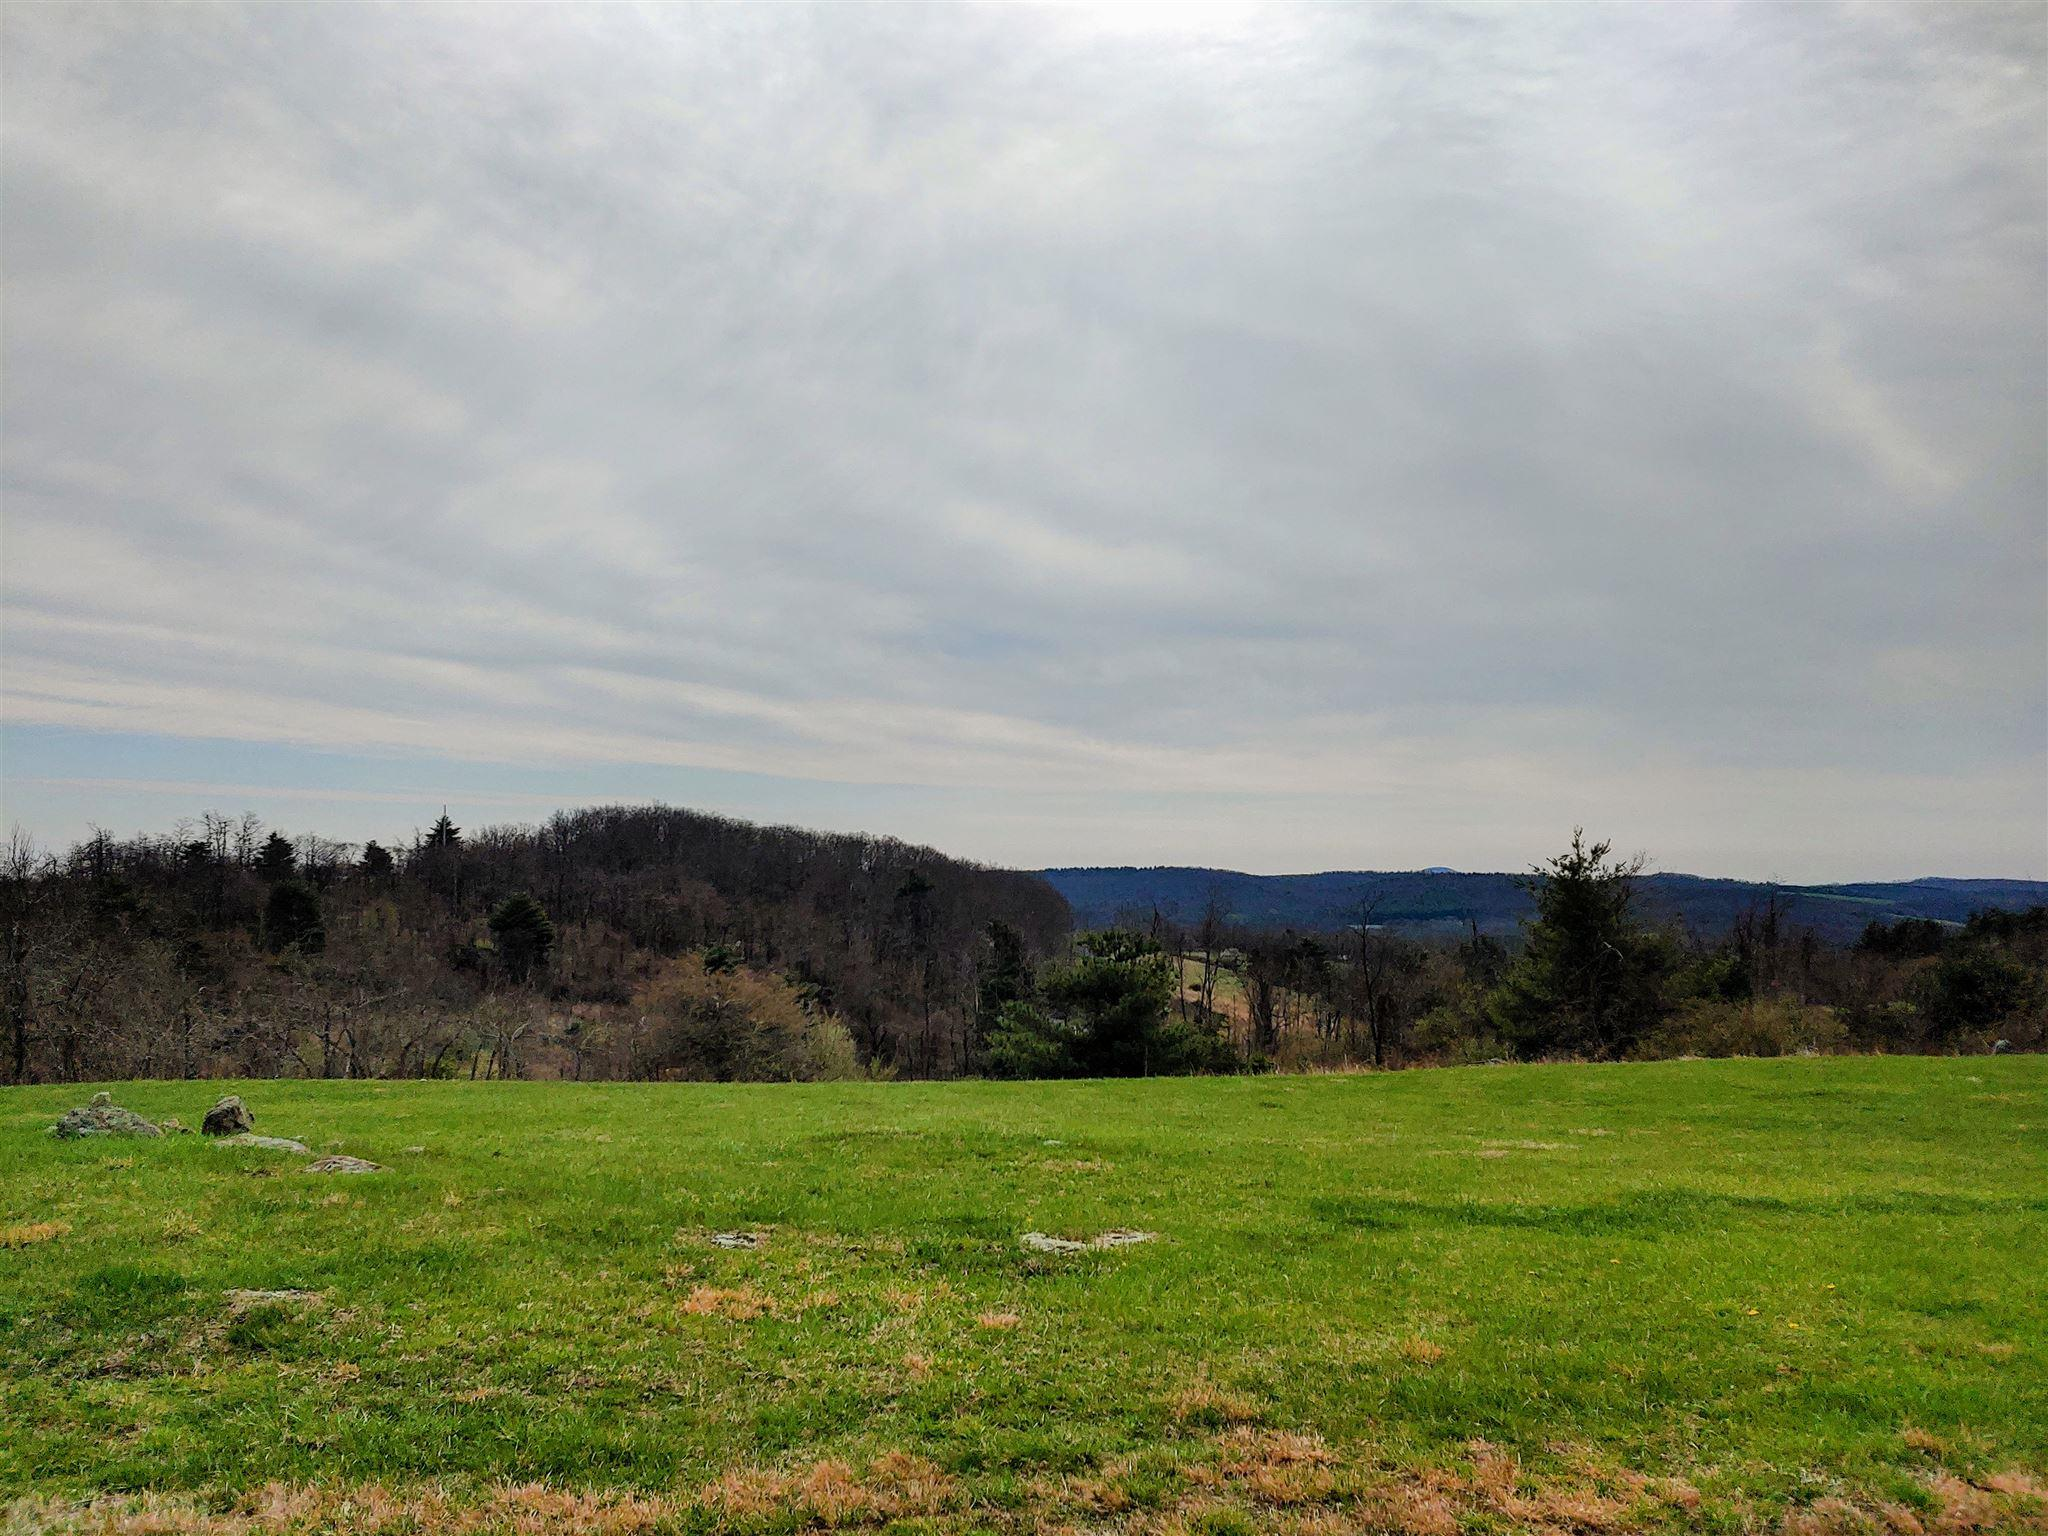 Enjoy the views from this ridge top property!  Level 2 acre lot adjacent to the Blue Ridge Parkway.  Just a few minutes to Hwy 58 and Chateau Morrisette Winery!